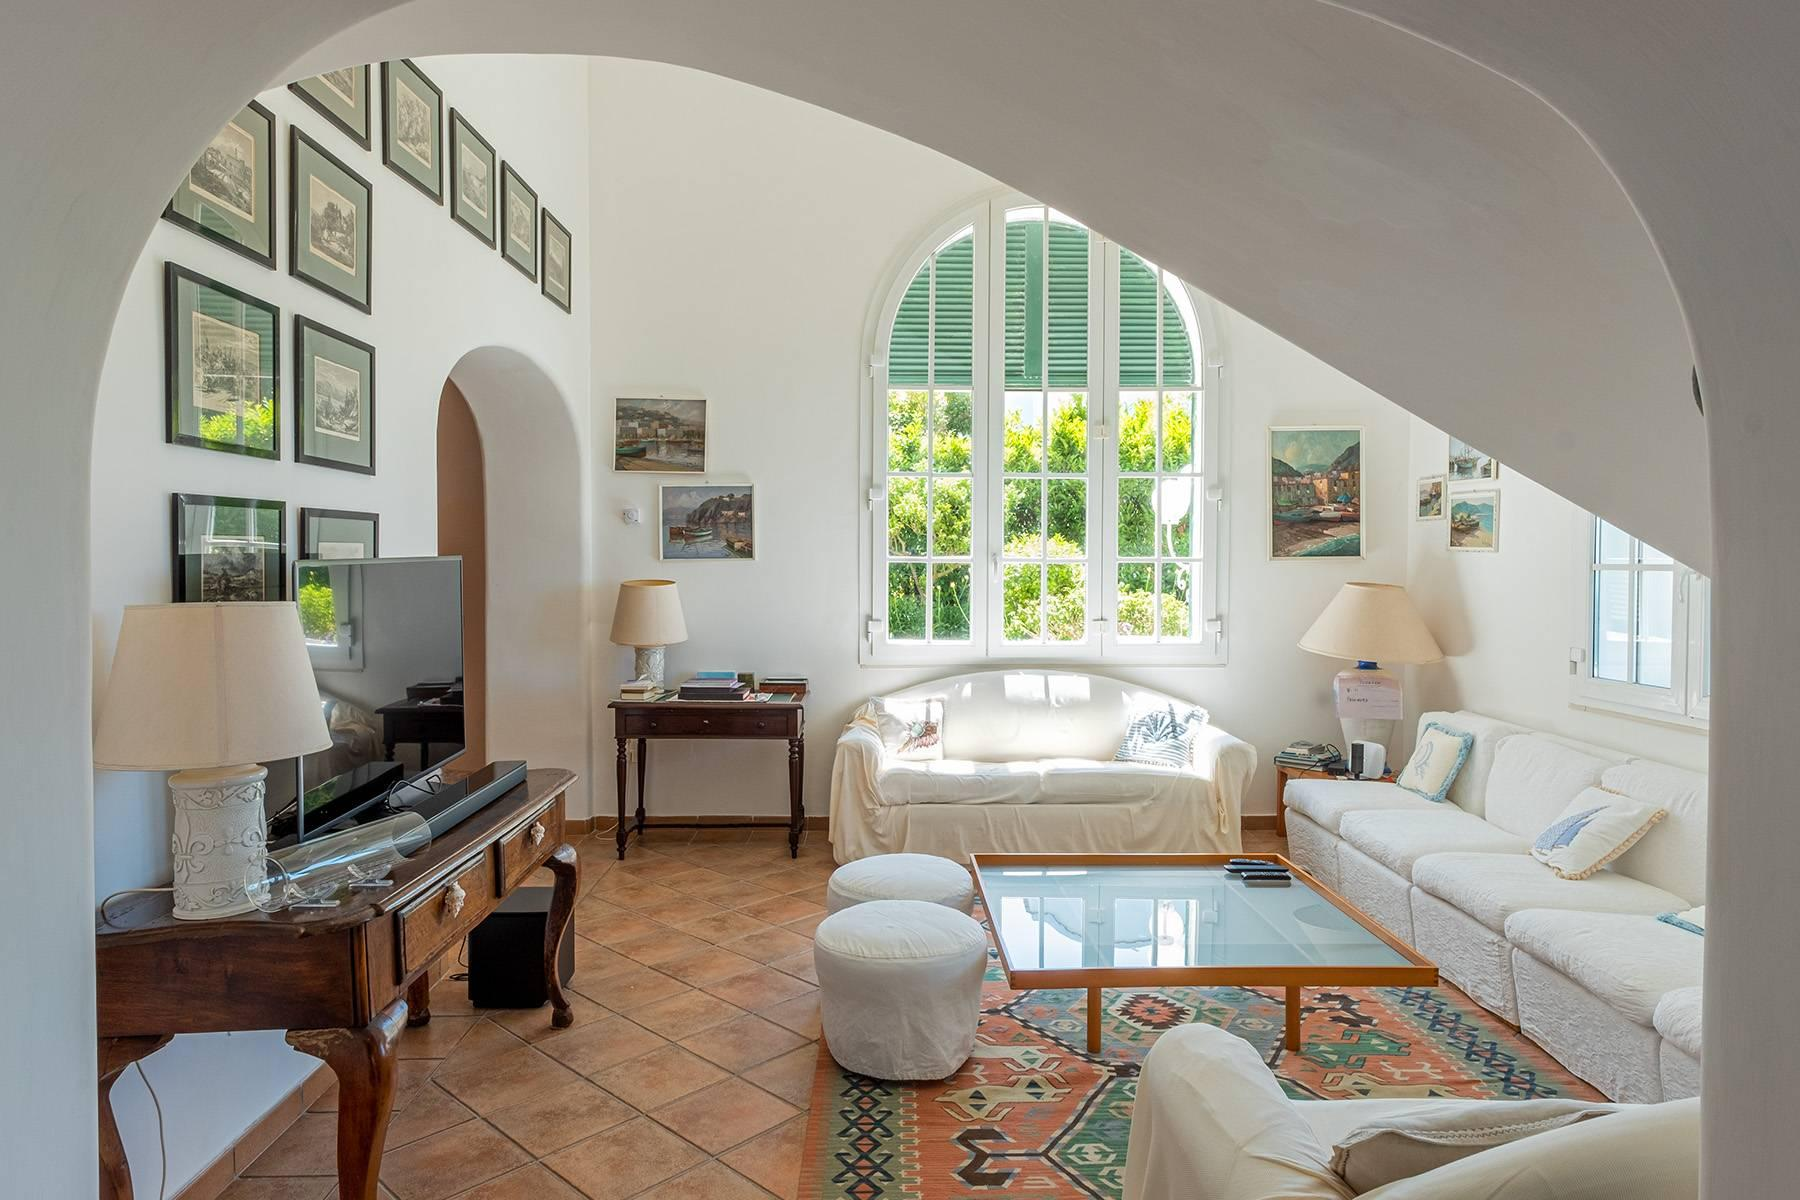 Charming villa with swimming pool in Anacapri - 3